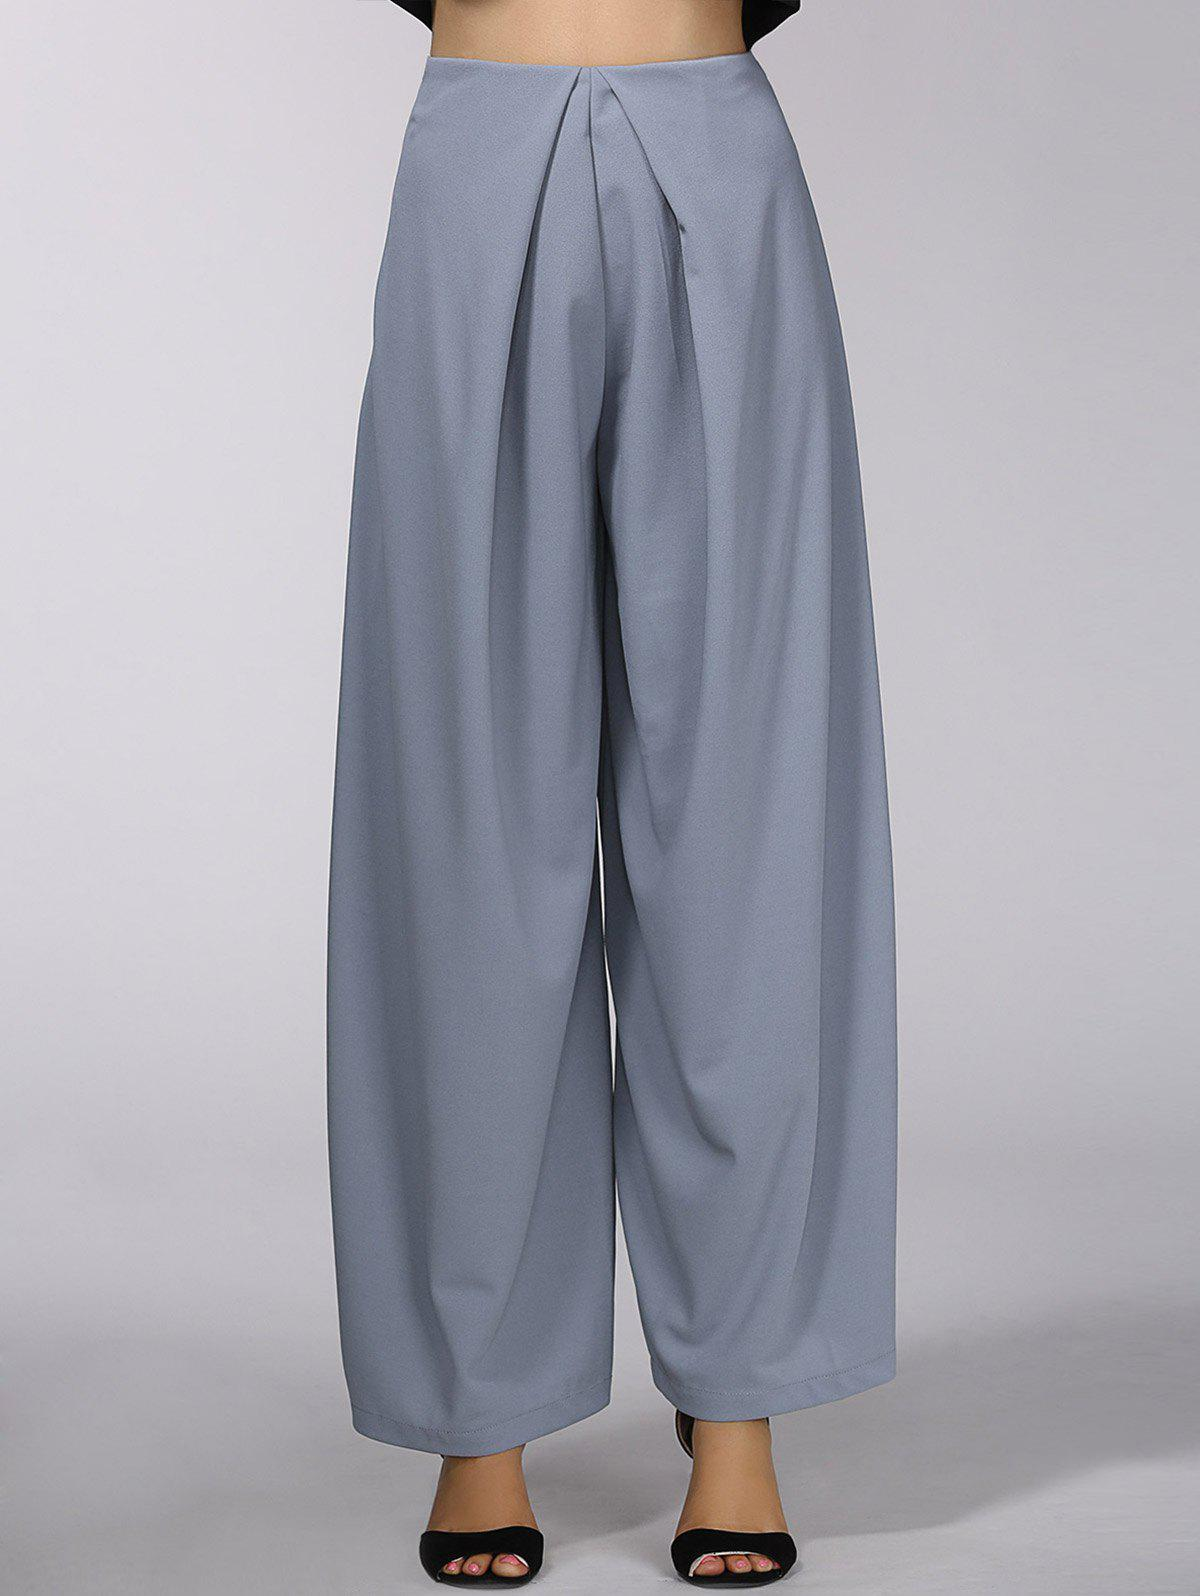 Stylish High Wasit Solid Color Wide-Leg Pants For Women - DEEP GRAY S